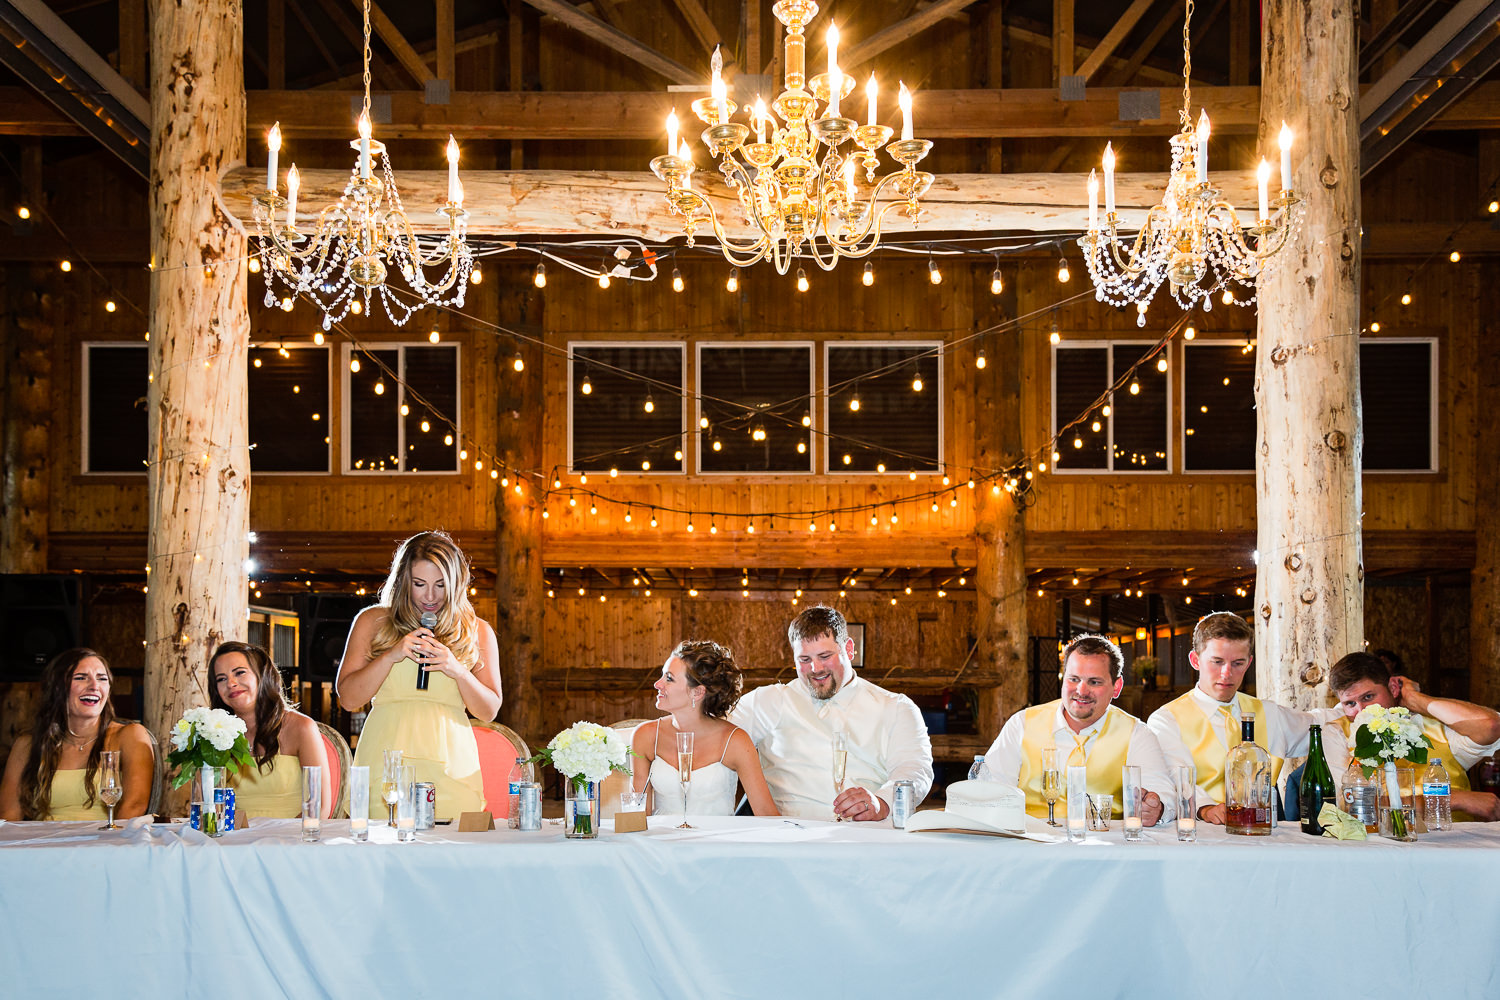 billings-montana-swift-river-ranch-wedding-reception-wedding-party-during-toasts.jpg